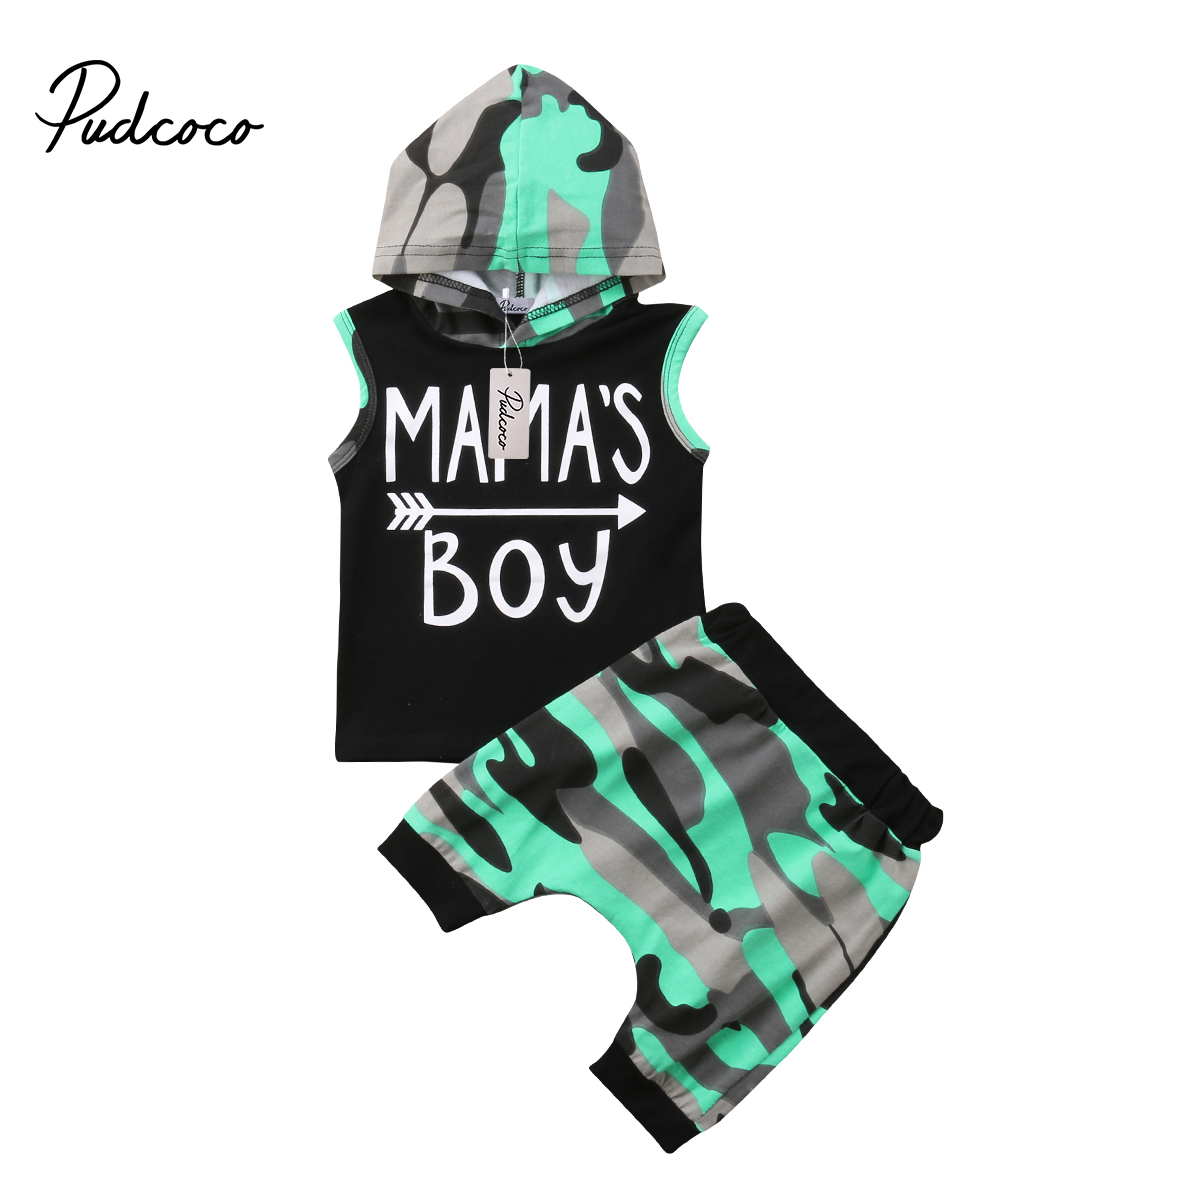 2018 Brand New Toddler Infant Baby Kids Boys Outfits Sleeveless Hoodie T-shirt Top+ Pant PP Shorts Camo 2PCS Set Summer Clothing